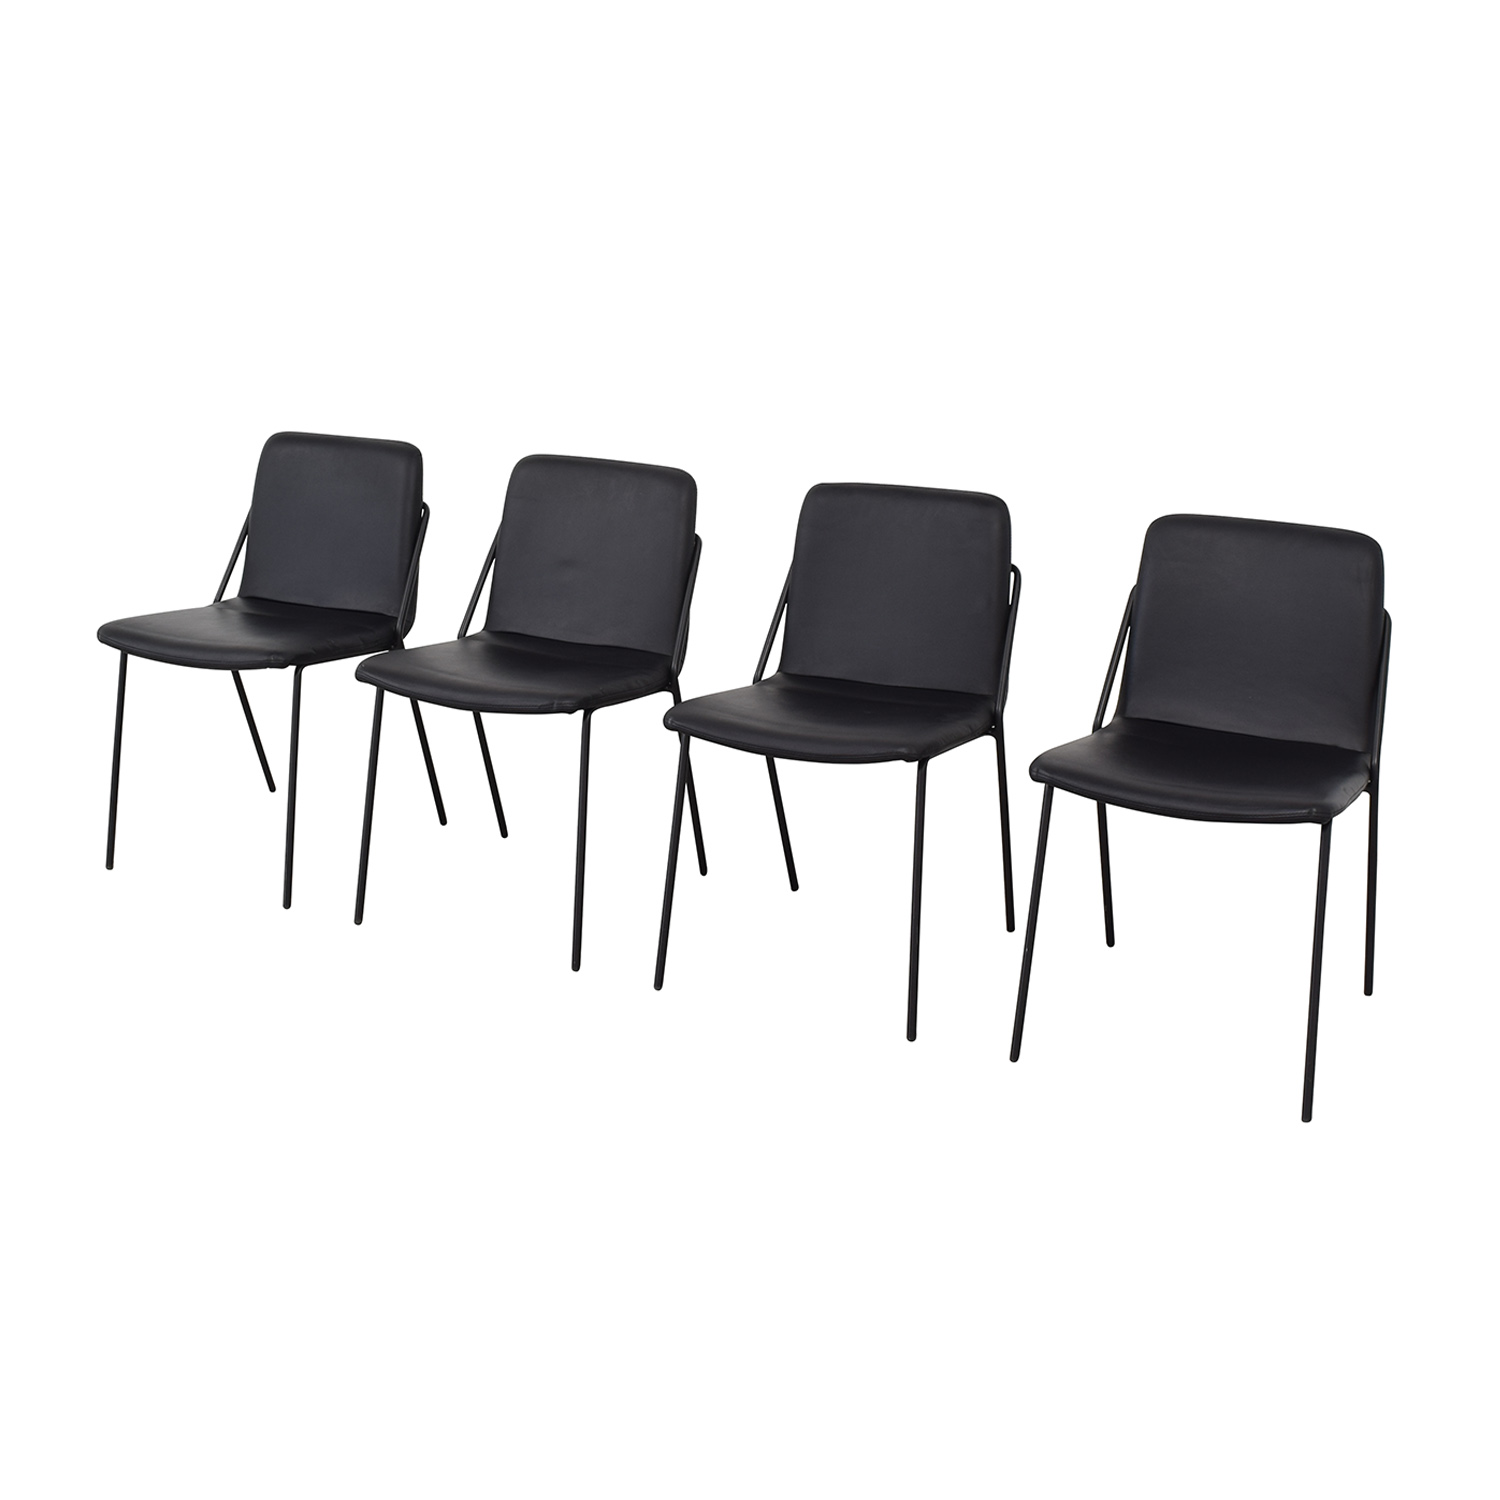 m.a.d. m.a.d. Black Sling Upholstered Chairs coupon